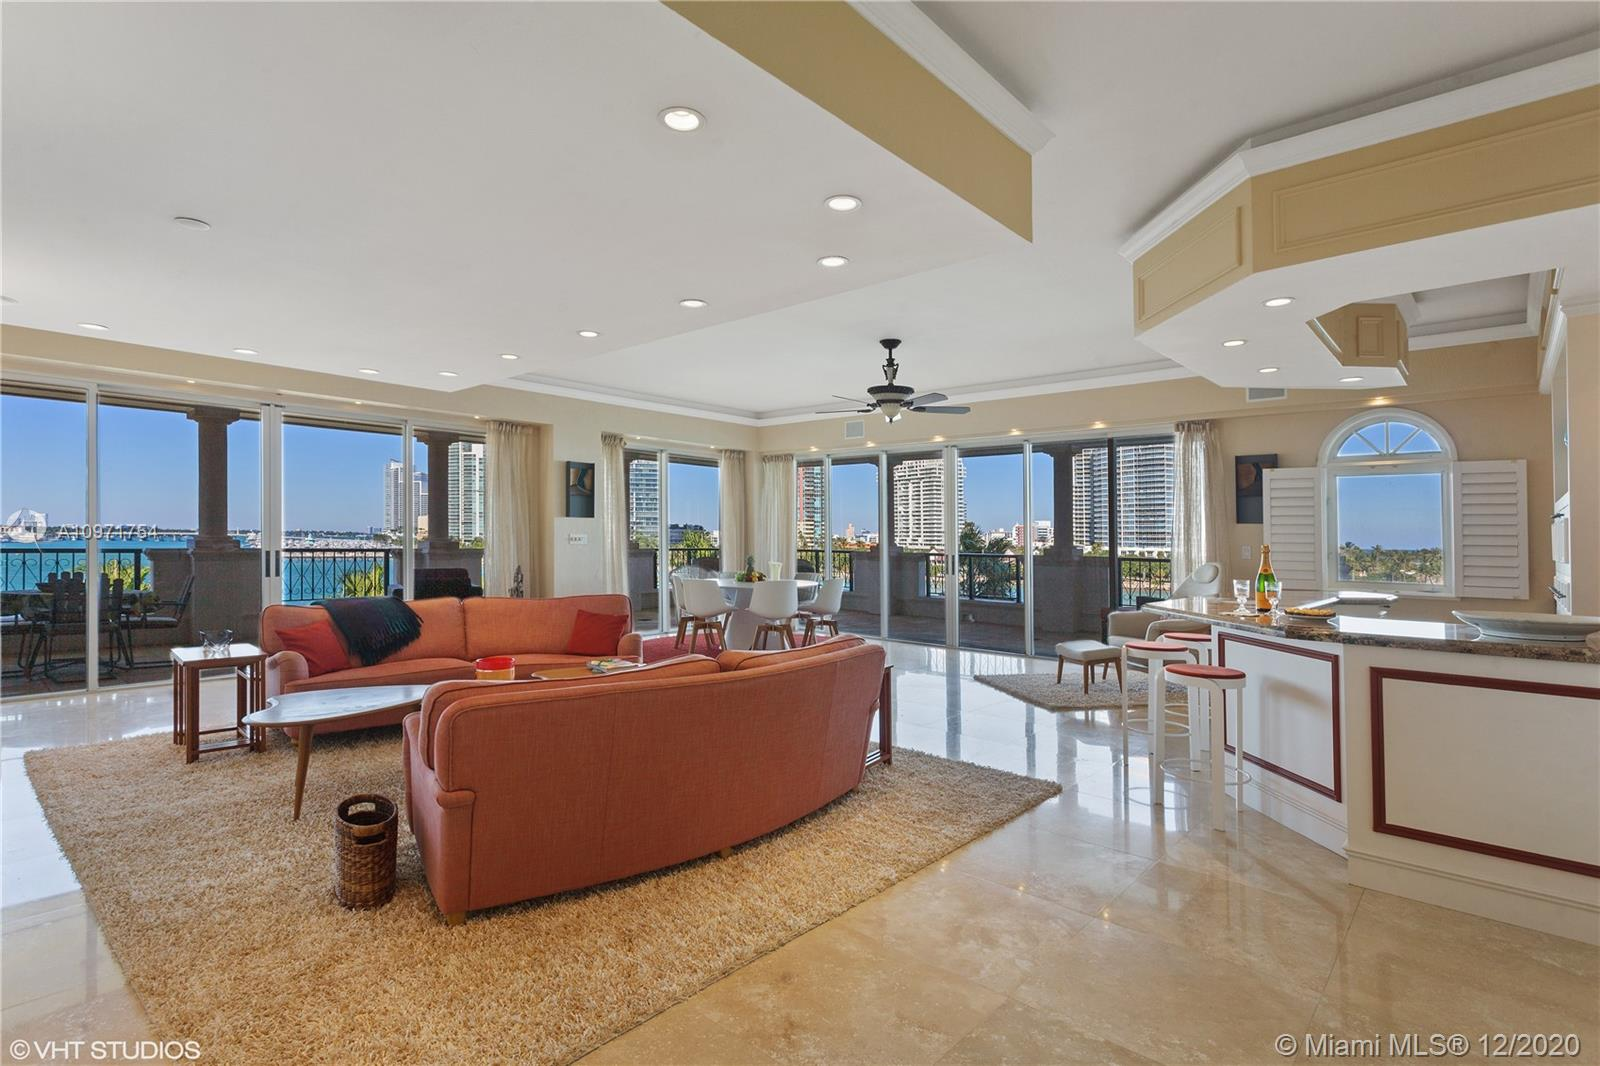 REDUCED! Spectacular Open Corner Villa Del Mare!  With no building immediately adjacent, this Unique corner  offers Rare, Unobstructed, Open Water Views to the North, East, & West - A Sweeping Panorama of Ocean, South Point Park, Miami Beach Marina, Government Cut, & Miami Beach Skyline! Vibrant boat activity includes Majestic Cruise Ships as they Glide By!  Bathed in Natural Sunlight from all directions. This Pristine 3 Bedroom, 3.5 Bath Residence has been skillfully designed & upgraded, including many custom features, built-ins, & wood-work.  Living Room features an Expanded Custom Bar fitted with wine cooler, ice maker, and refrigerator.  Generous Primary Bedroom includes ample sitting area, walk-in closets, private waterfront terrace.  Considered the most Desirable Oceanfront Building.